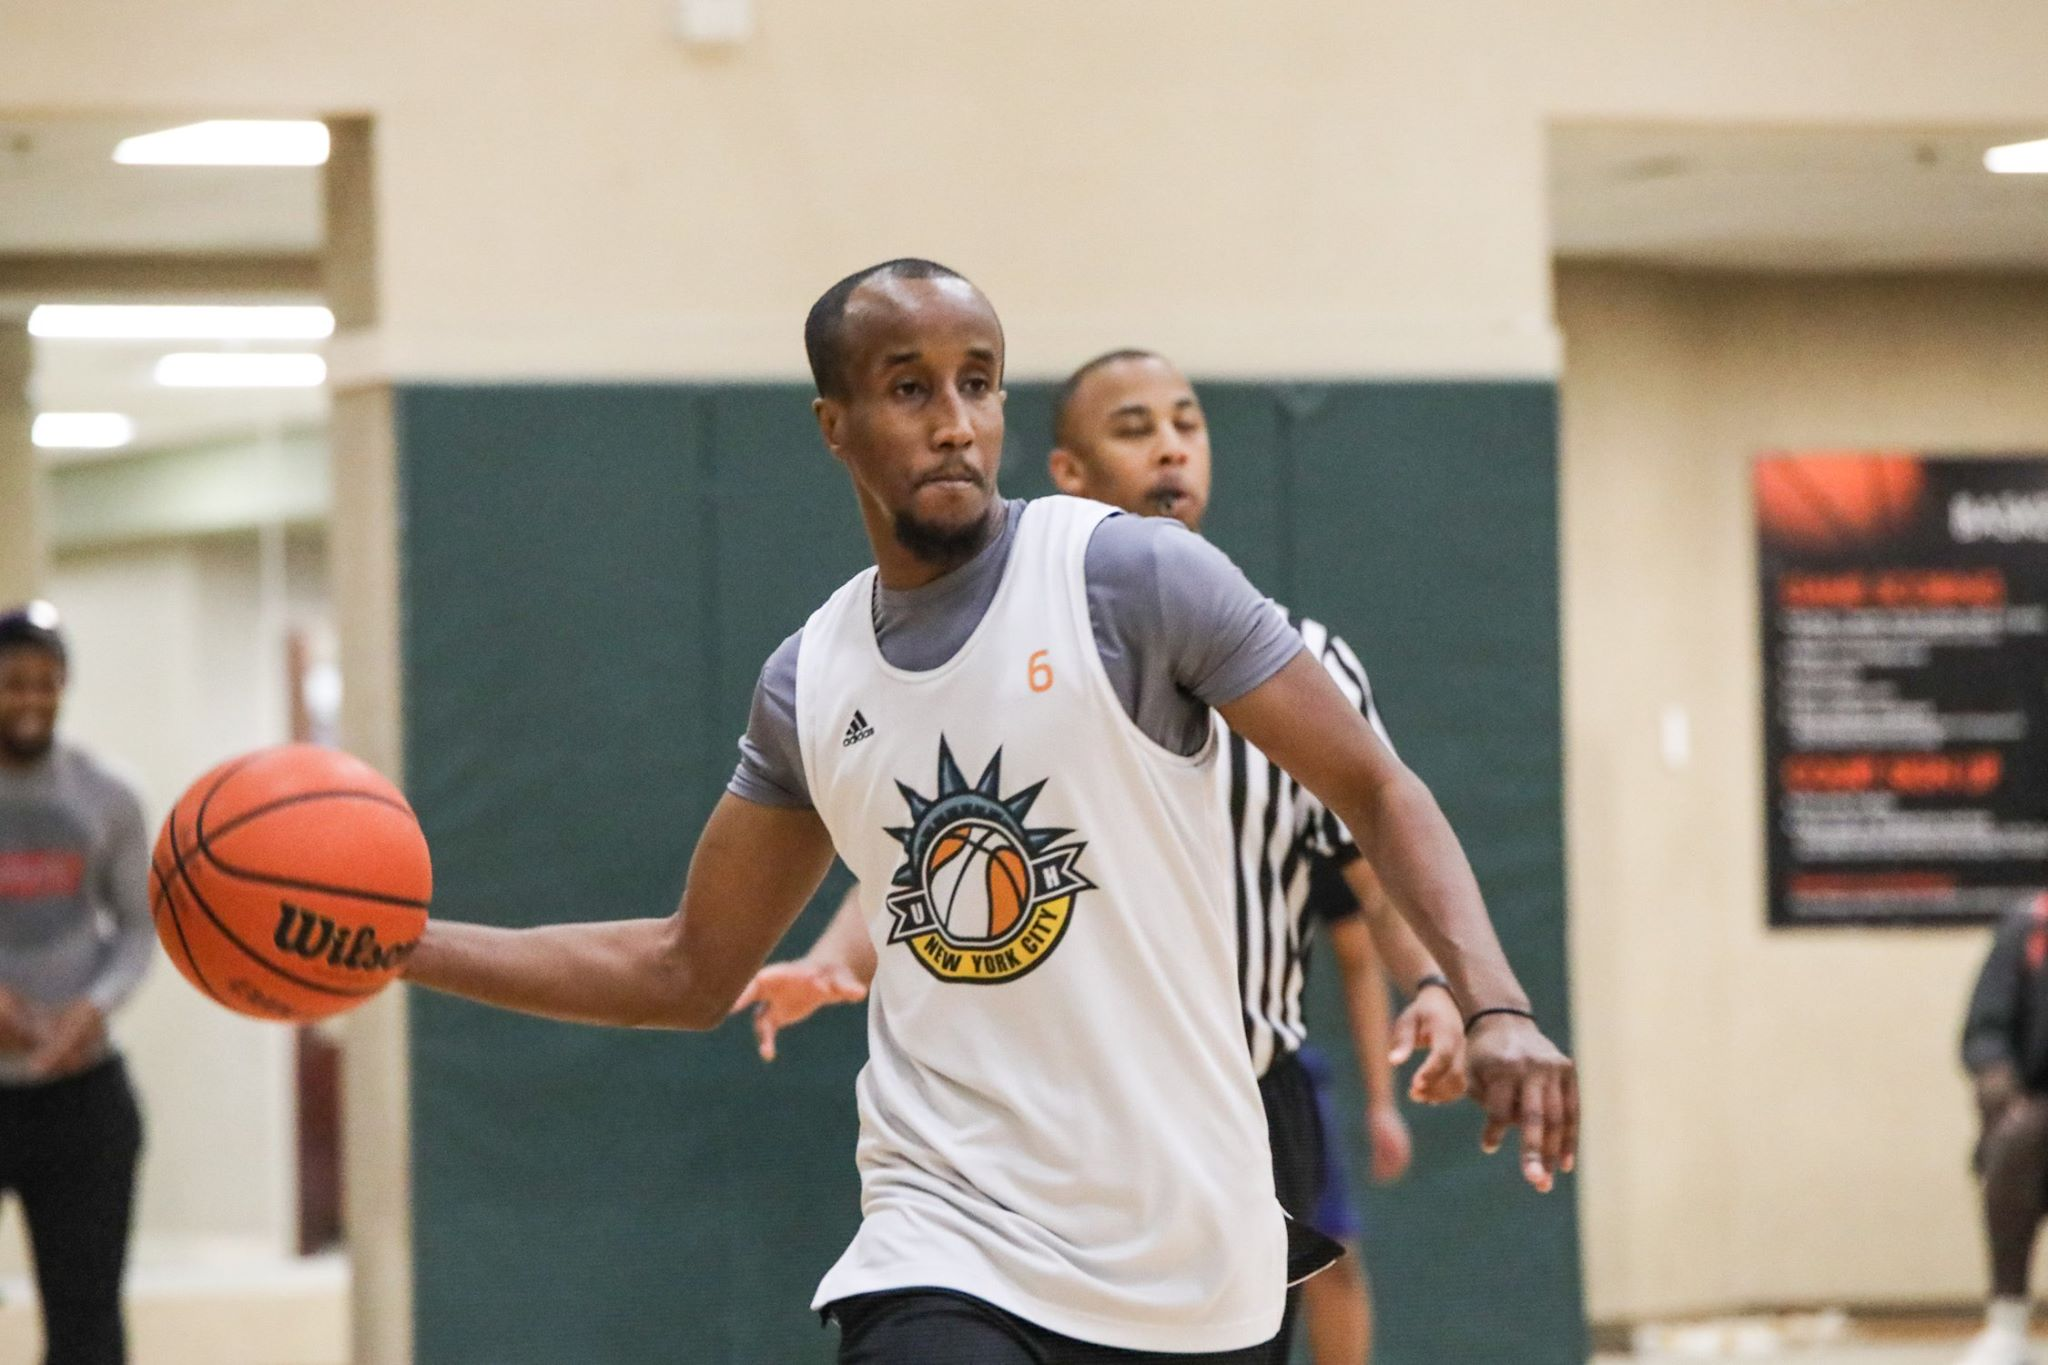 Abdi Mohamed playing in Fridley